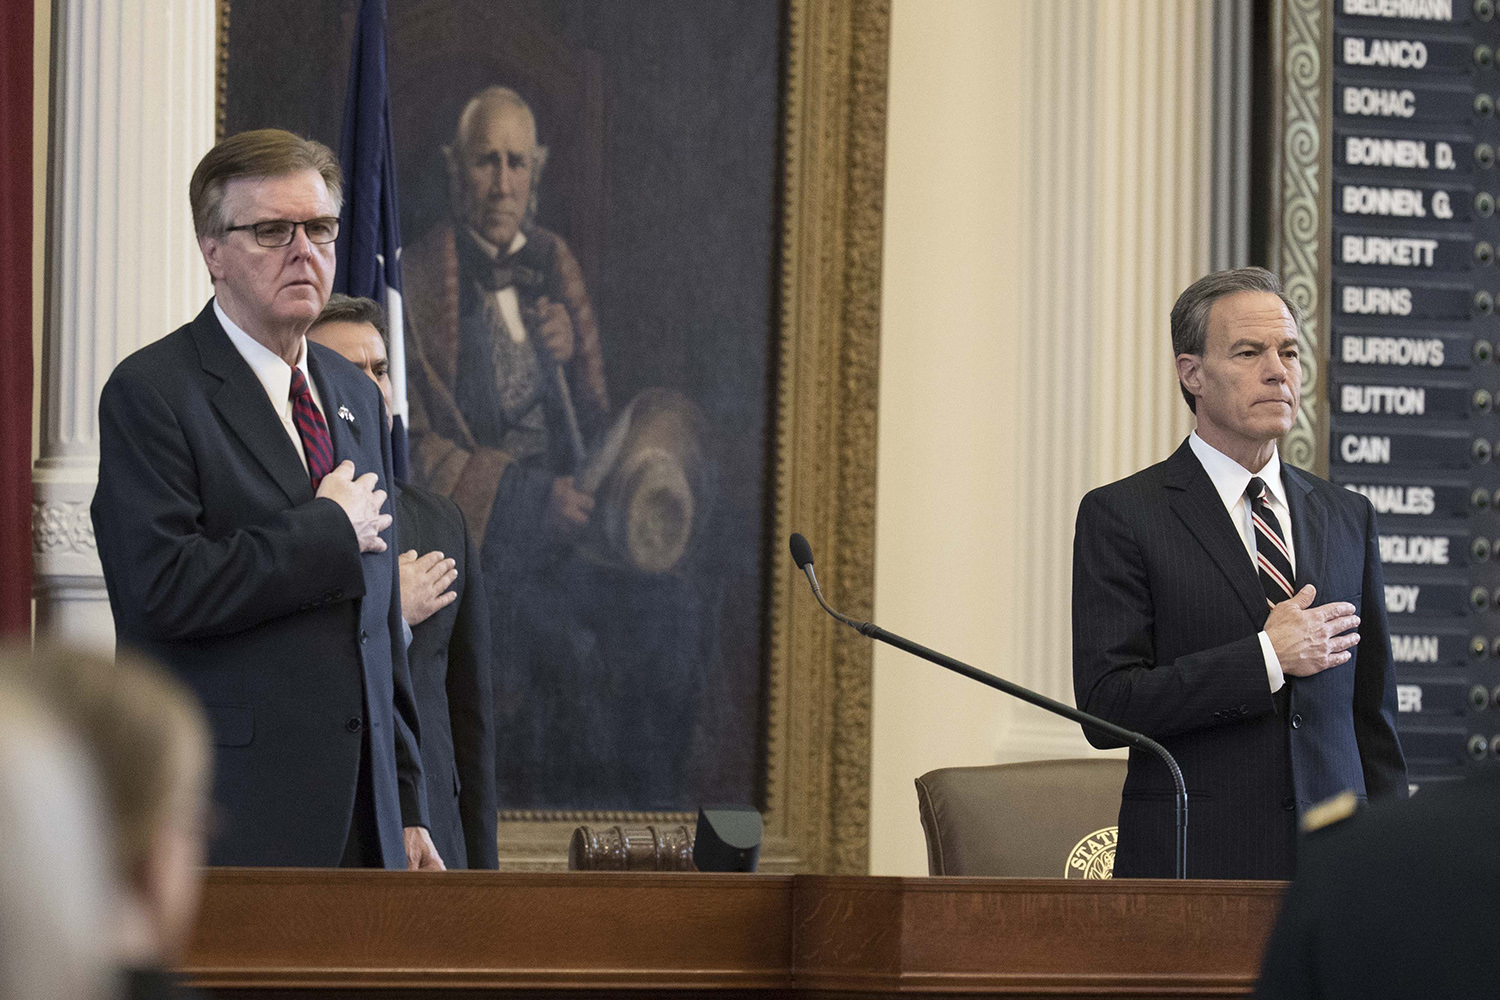 Lt. Gov Dan Patrick (right) and House Speaker Joe Straus stand for a ceremony commemorating veterans on May 27, 2017, two days before the 85th Legislature adjourned sine die.